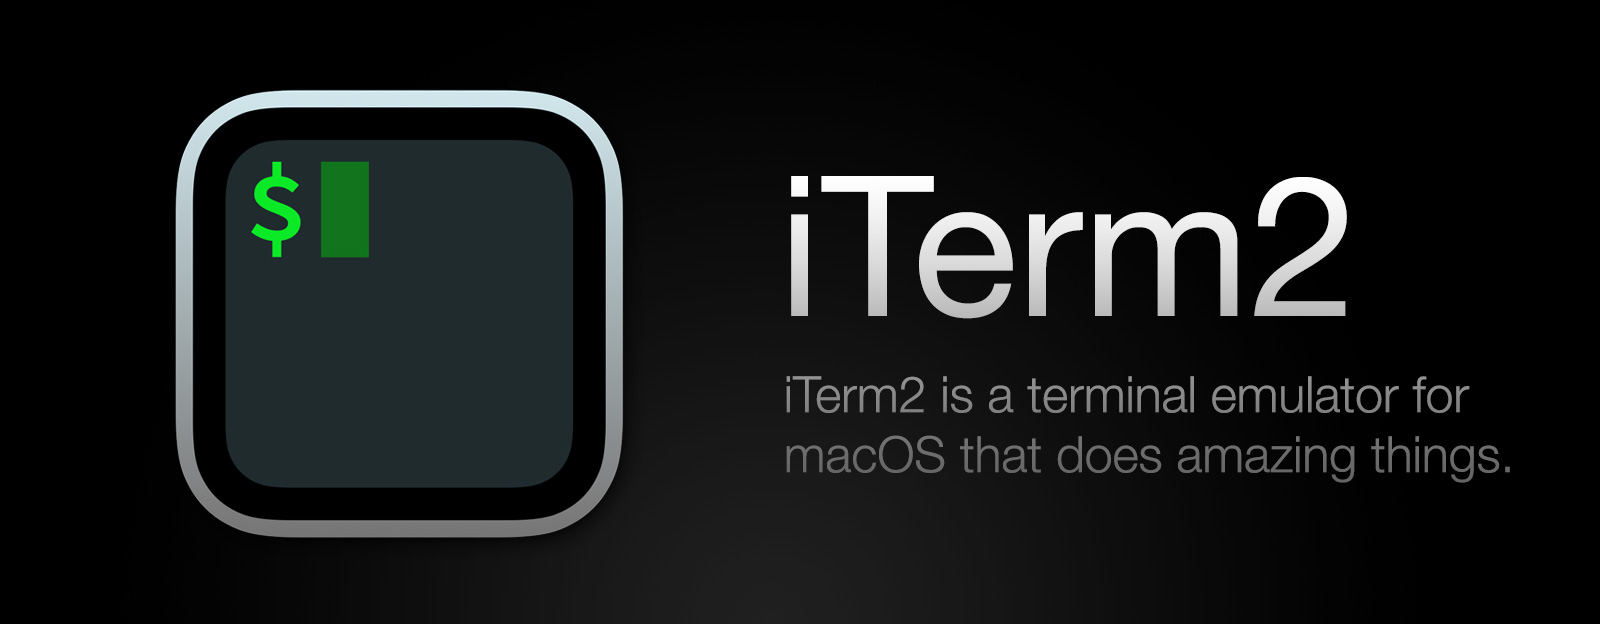 Session Restoration - Documentation - iTerm2 - macOS Terminal